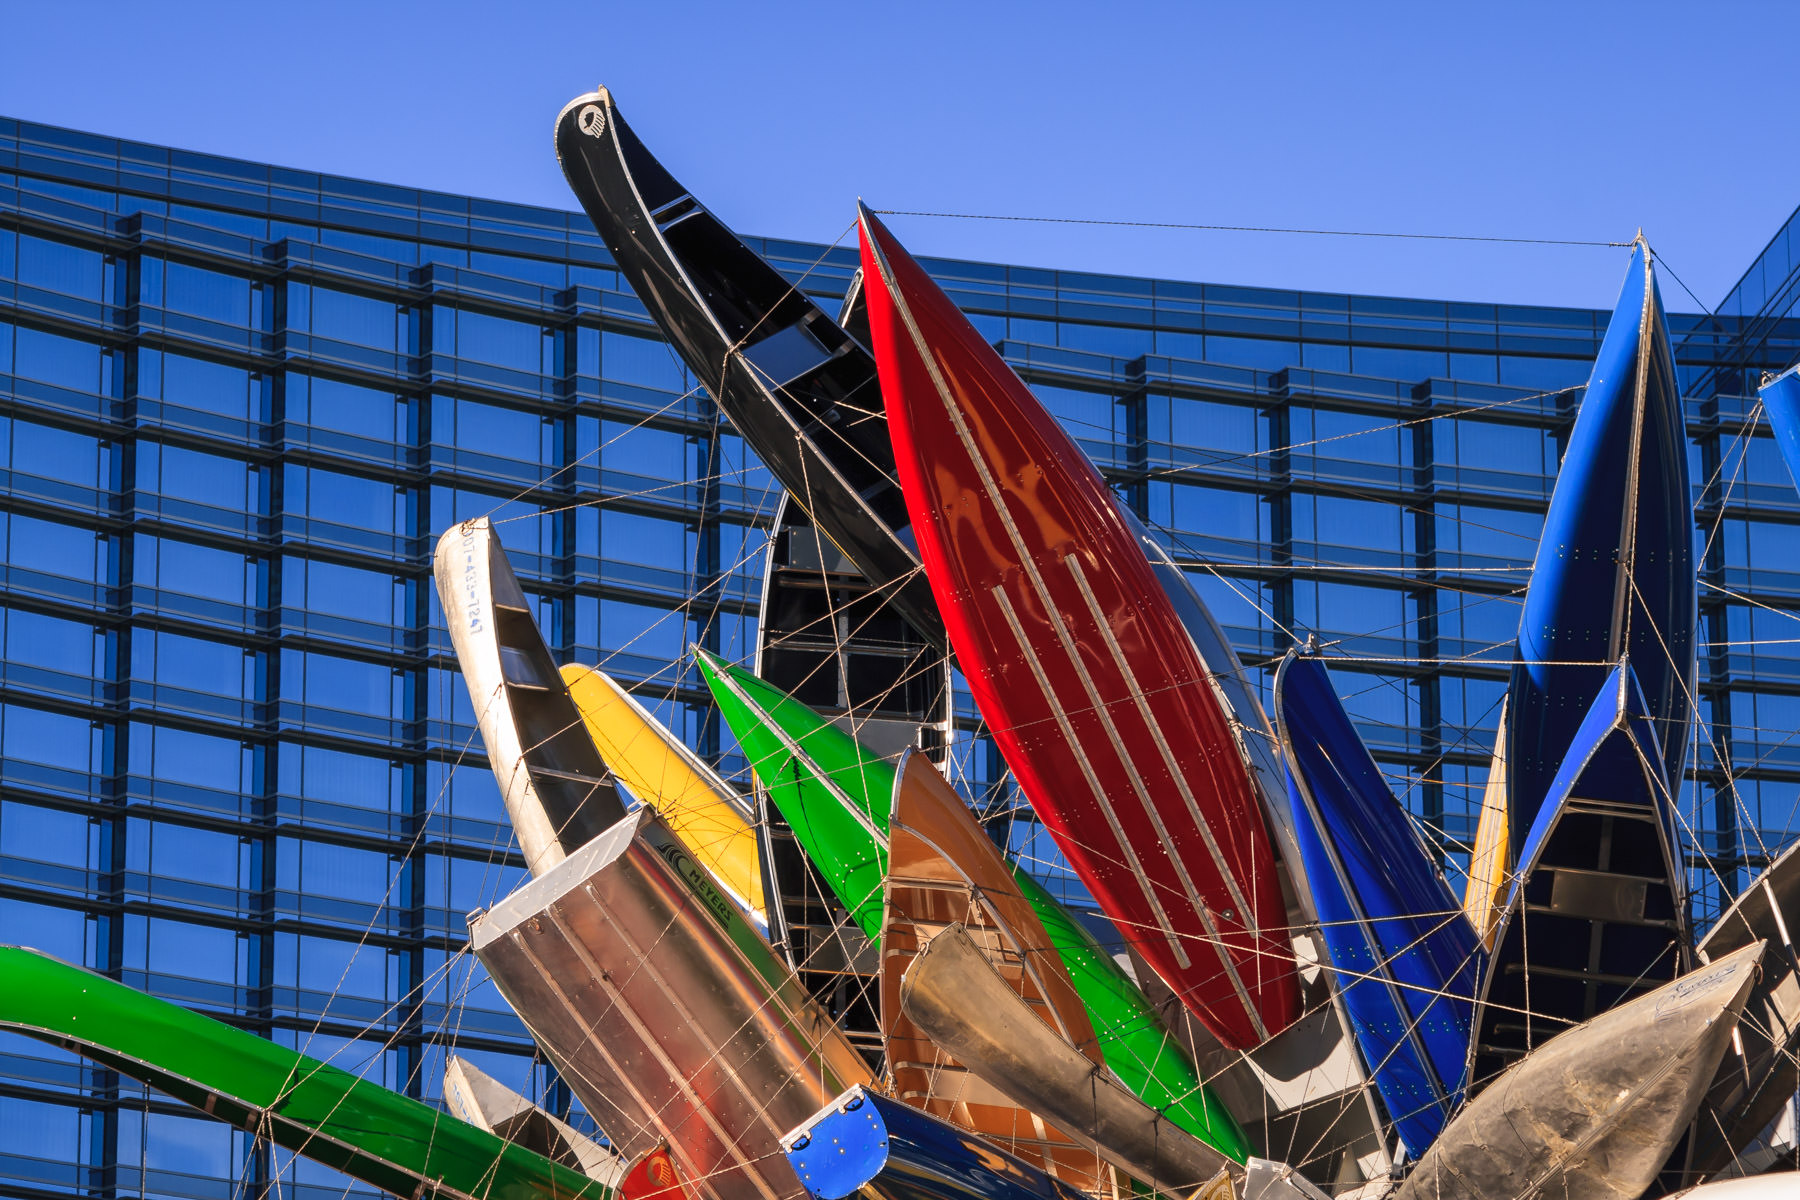 """Nancy Rubins' """"Big Edge"""" consists of 250 small boats and sits between the Vdara Hotel & Spa and the Aria, CityCenter, Las Vegas."""